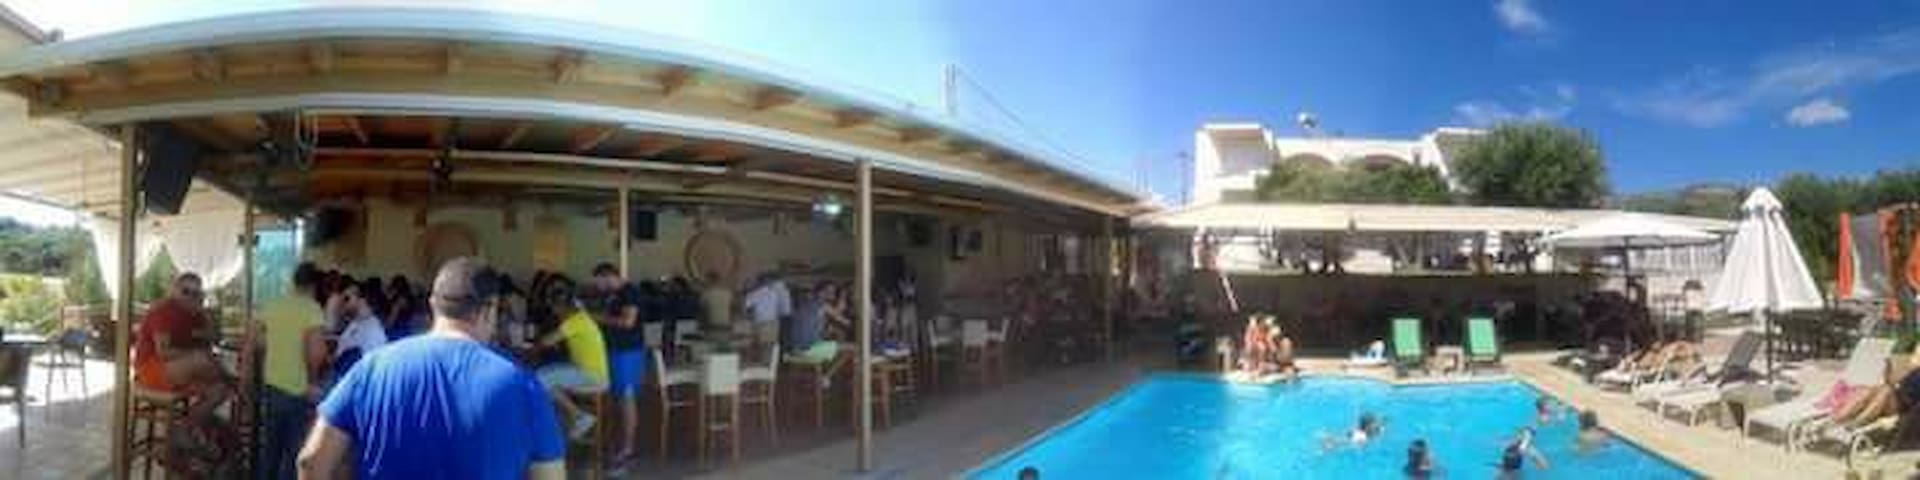 Hotel kyprianou- house.& pool bar. - Ηγουμενίτσα - หอพัก